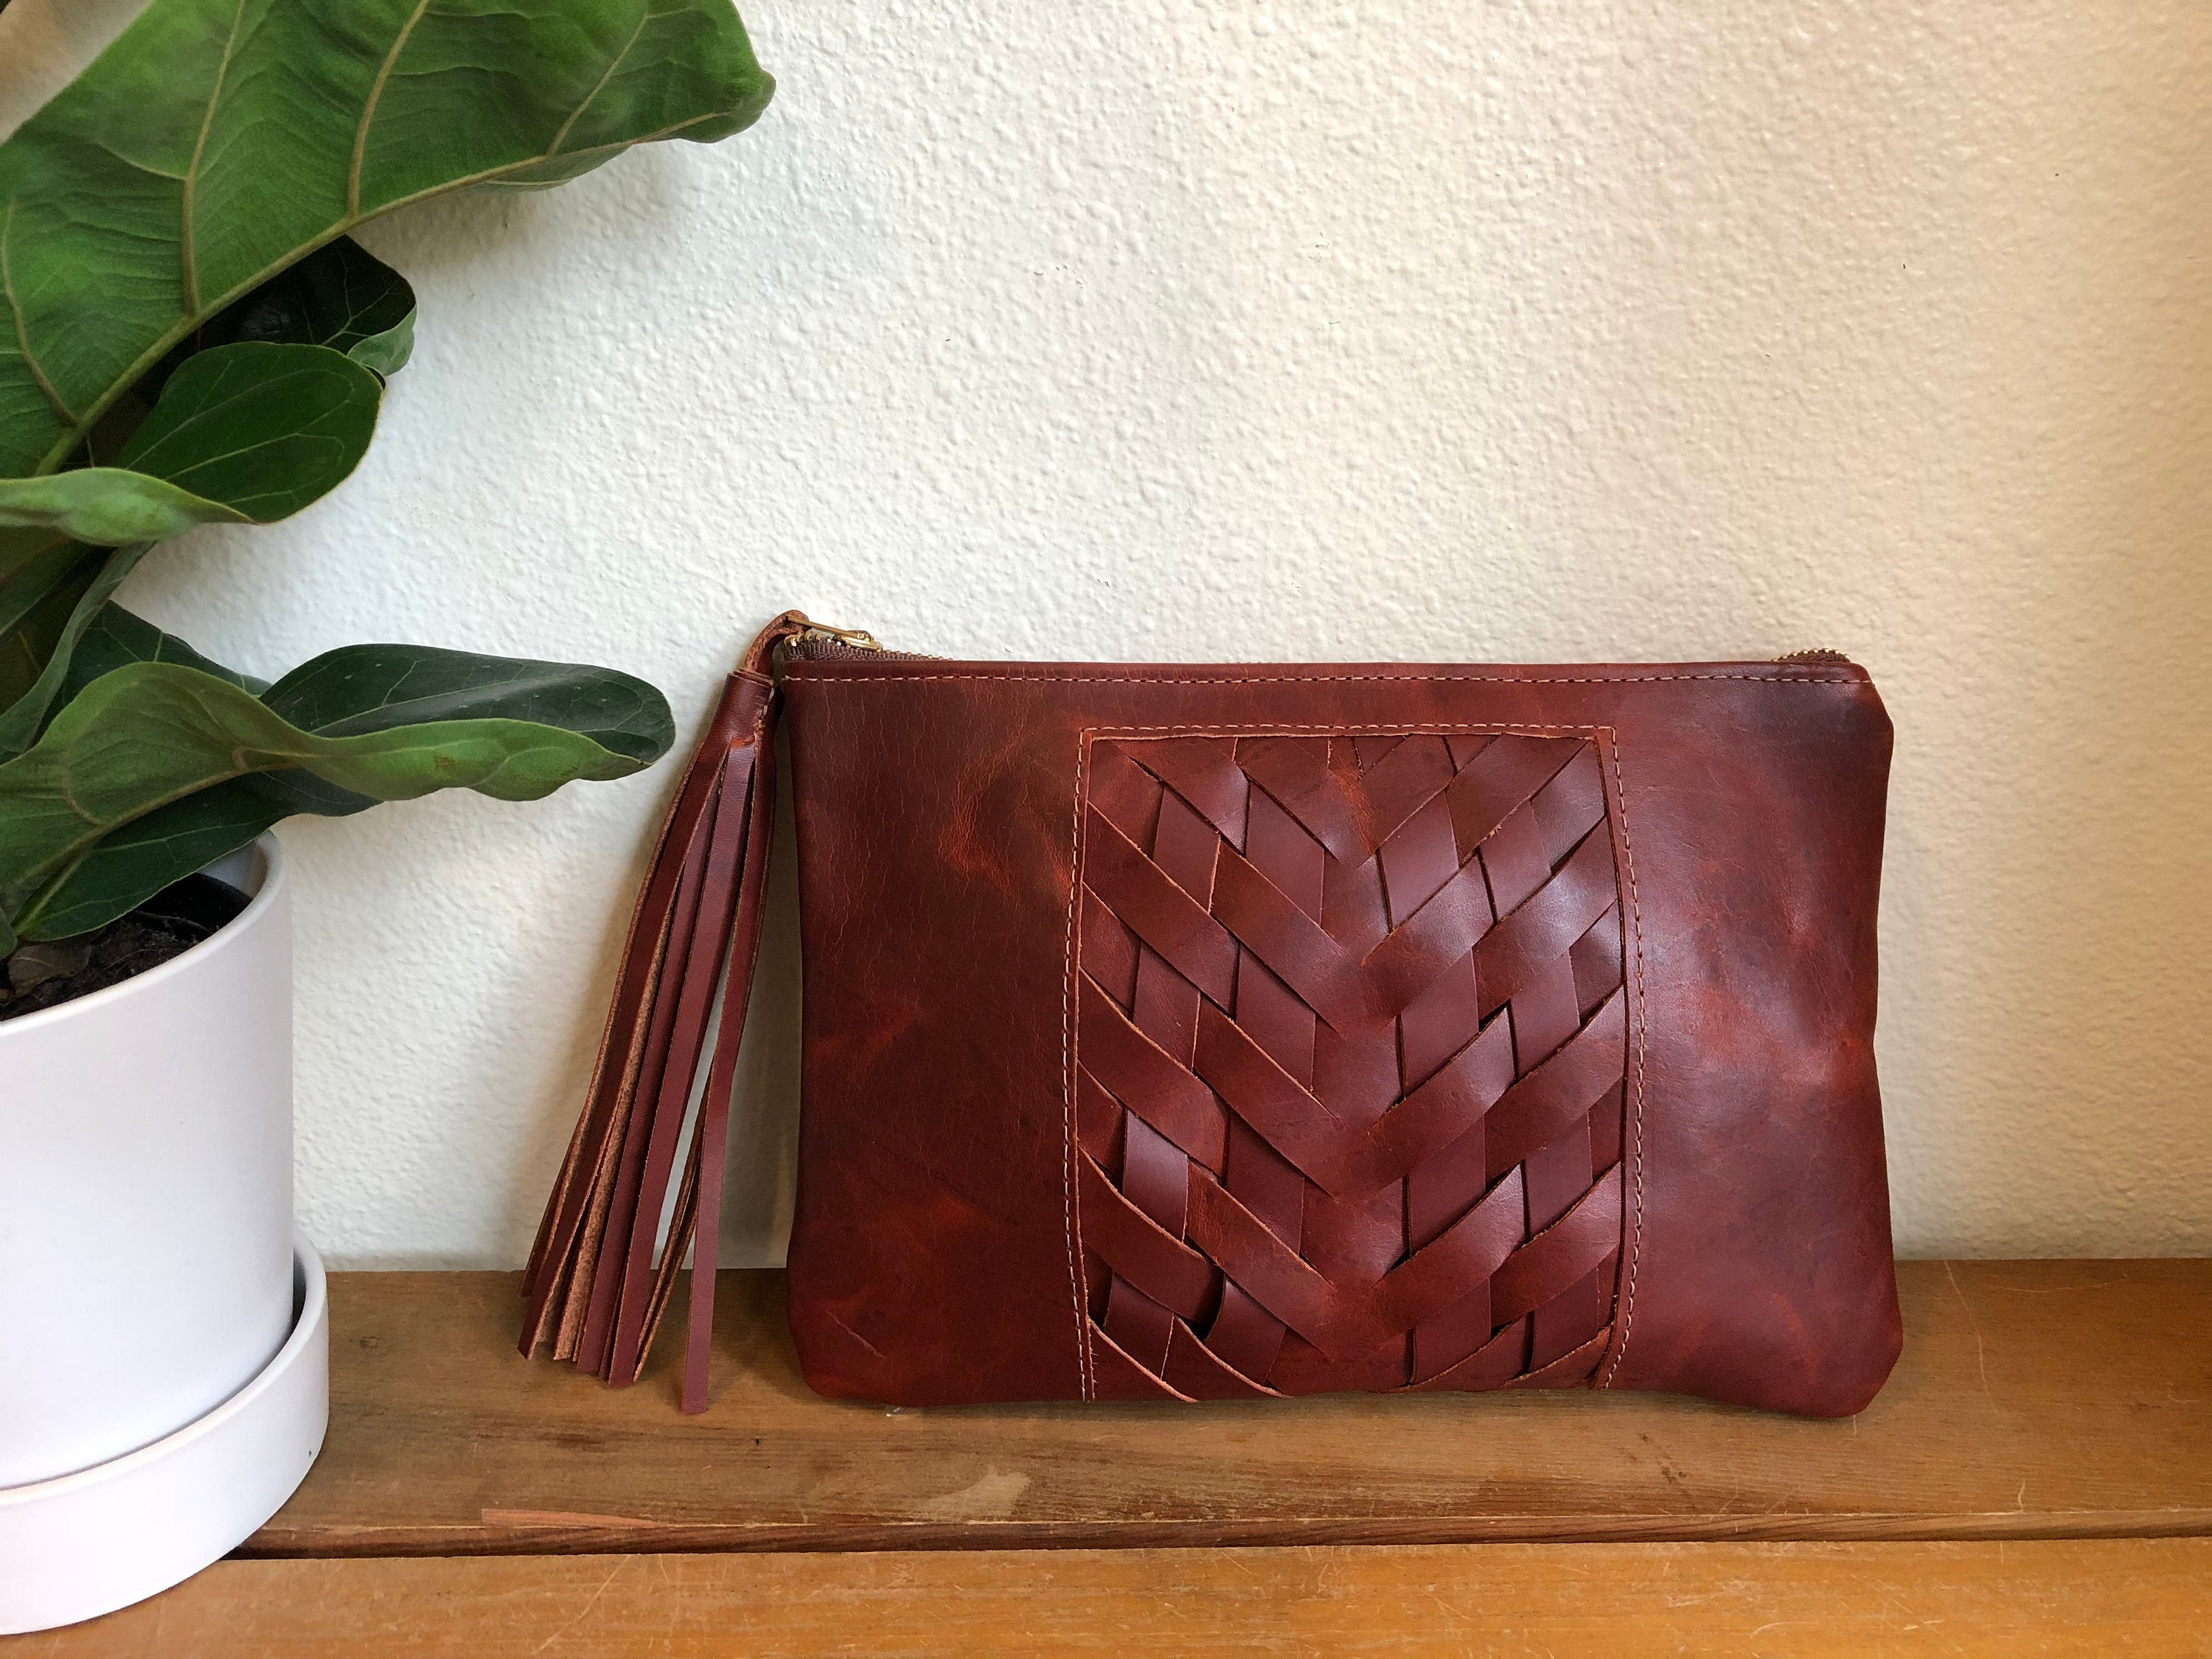 Brown leather clutch bag with woven panel and tassel sits near plant on table